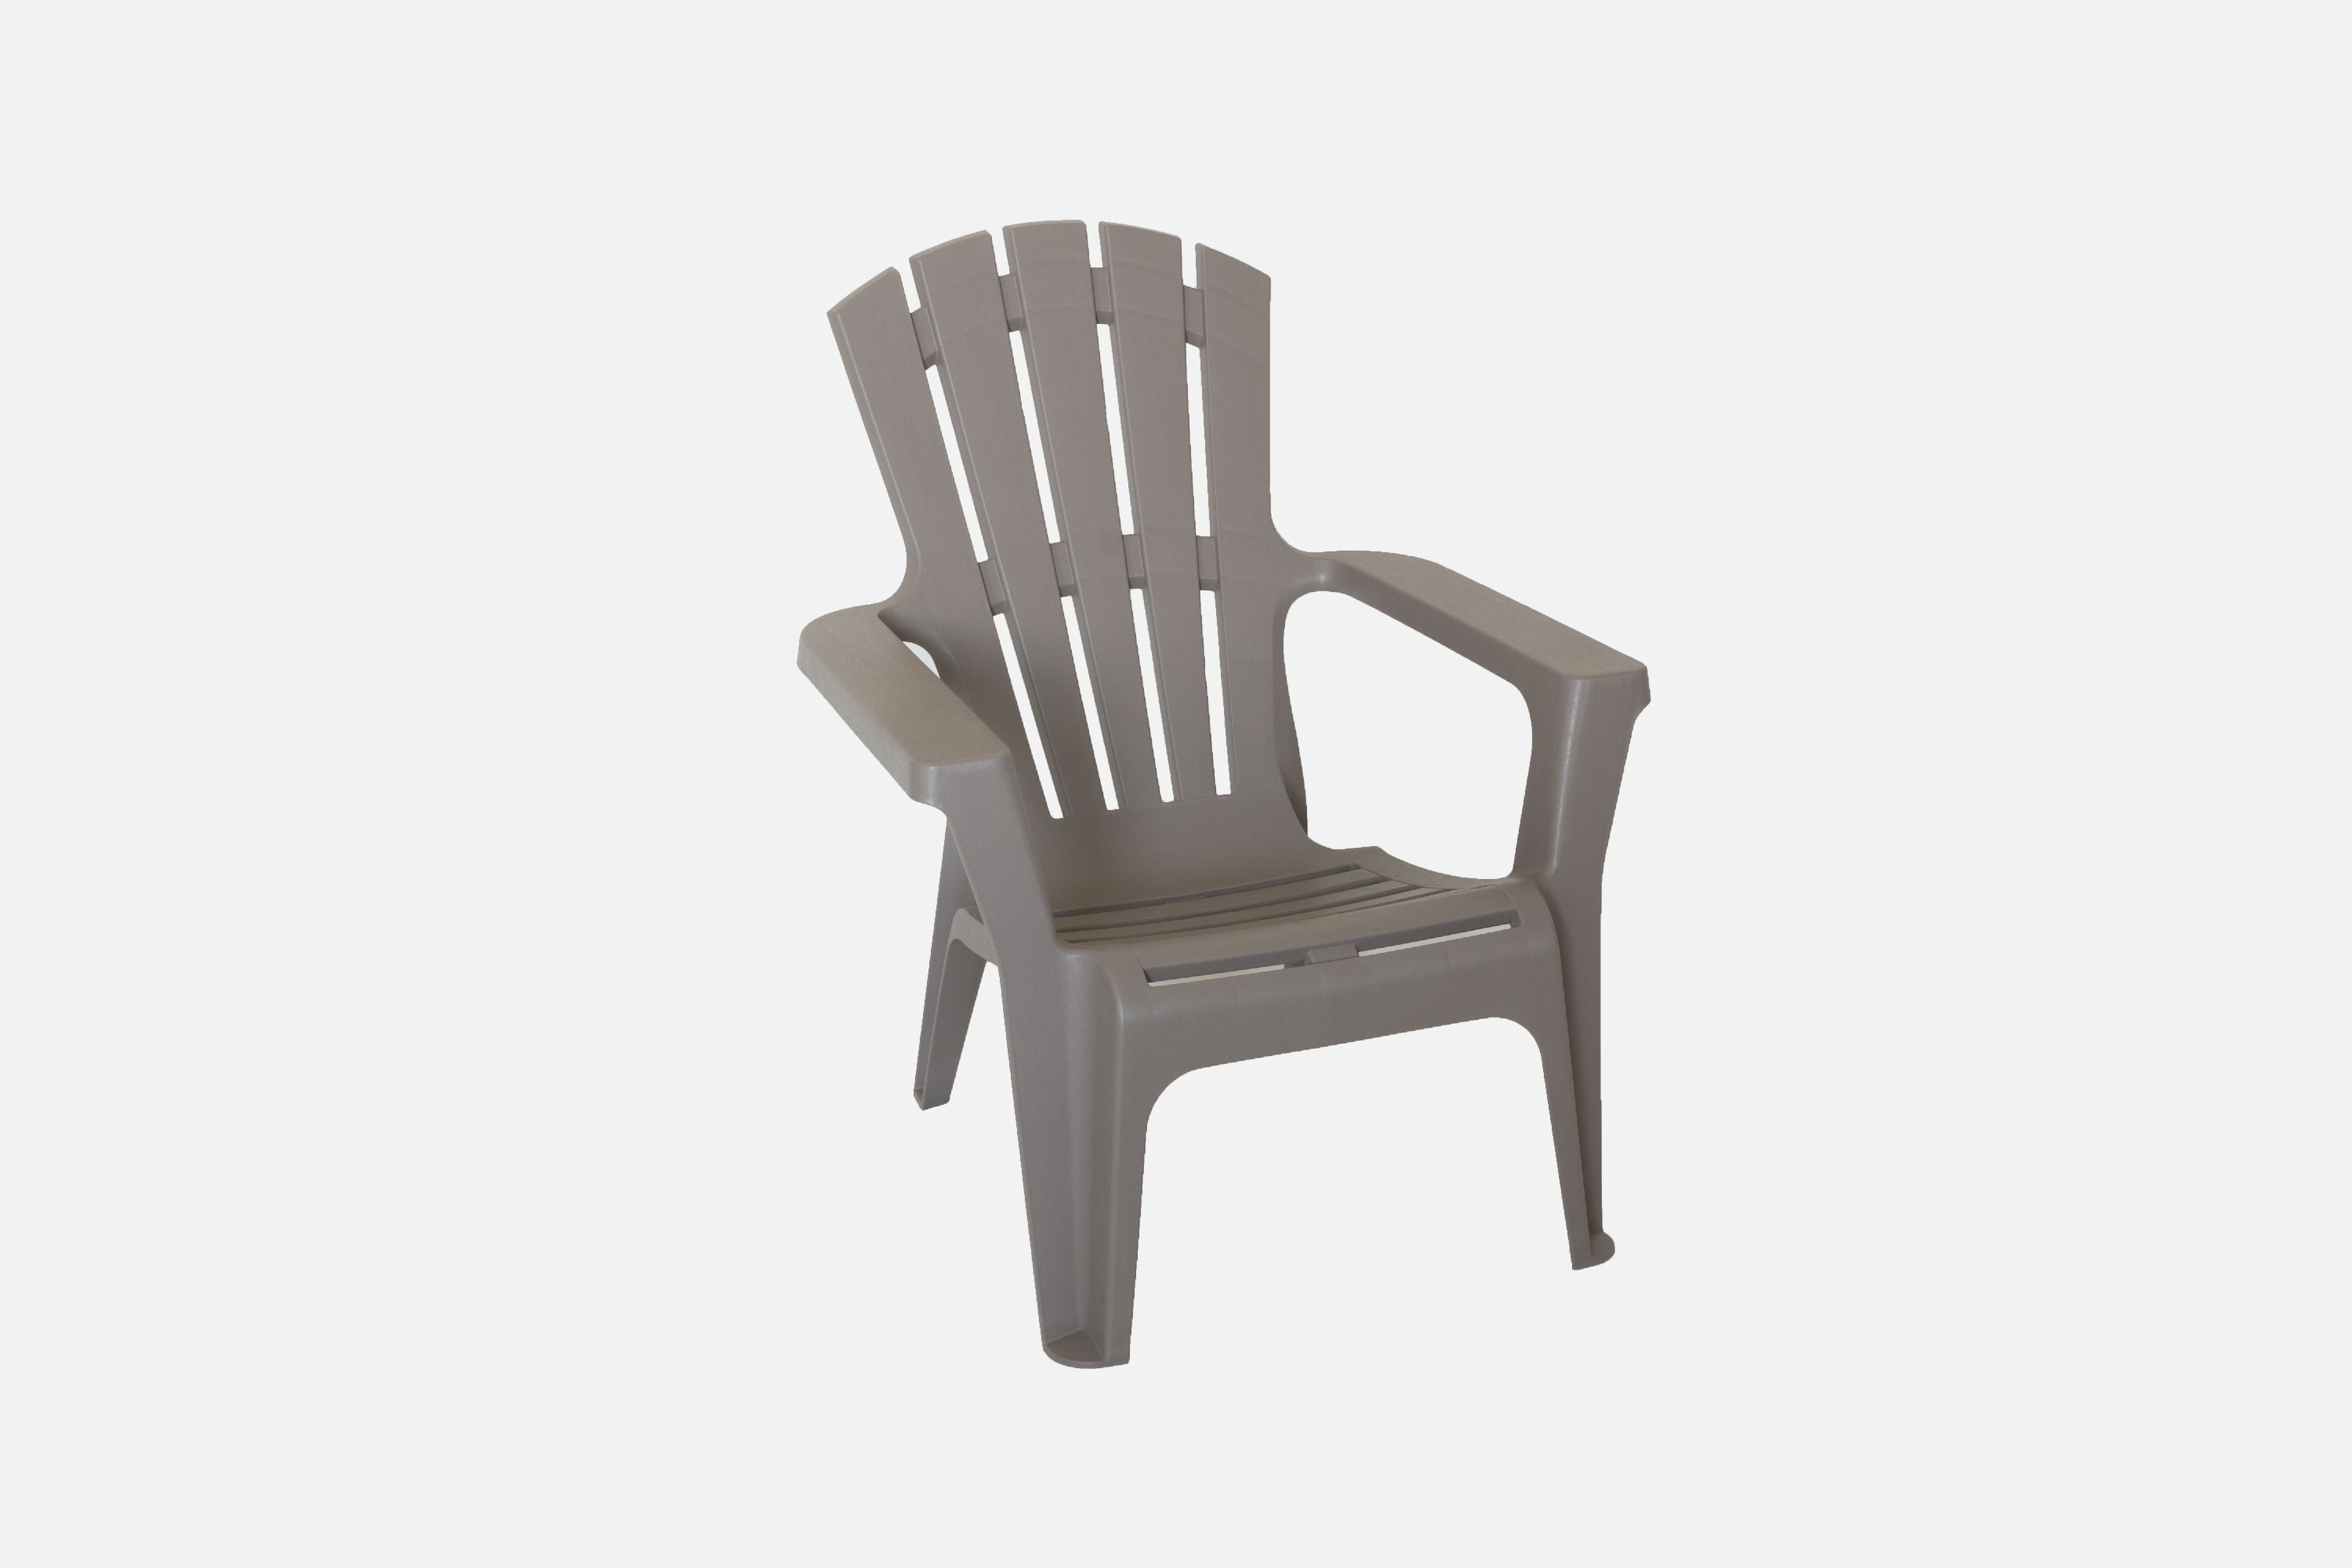 Incadozo Adirondack Chair in Warm Gray (4 Pack) by Bestsign International Inc